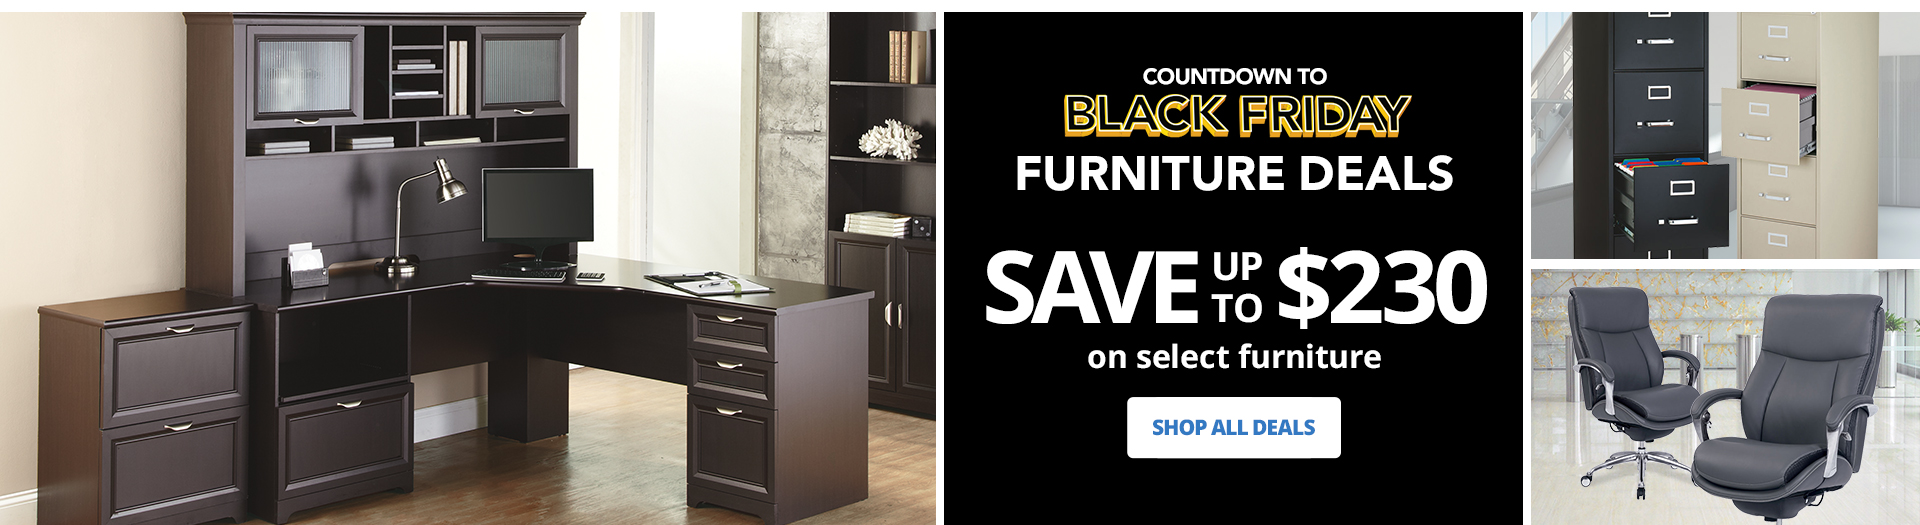 Countdown To Black Friday Furniture Event Save Up To $230 On Select Furniture